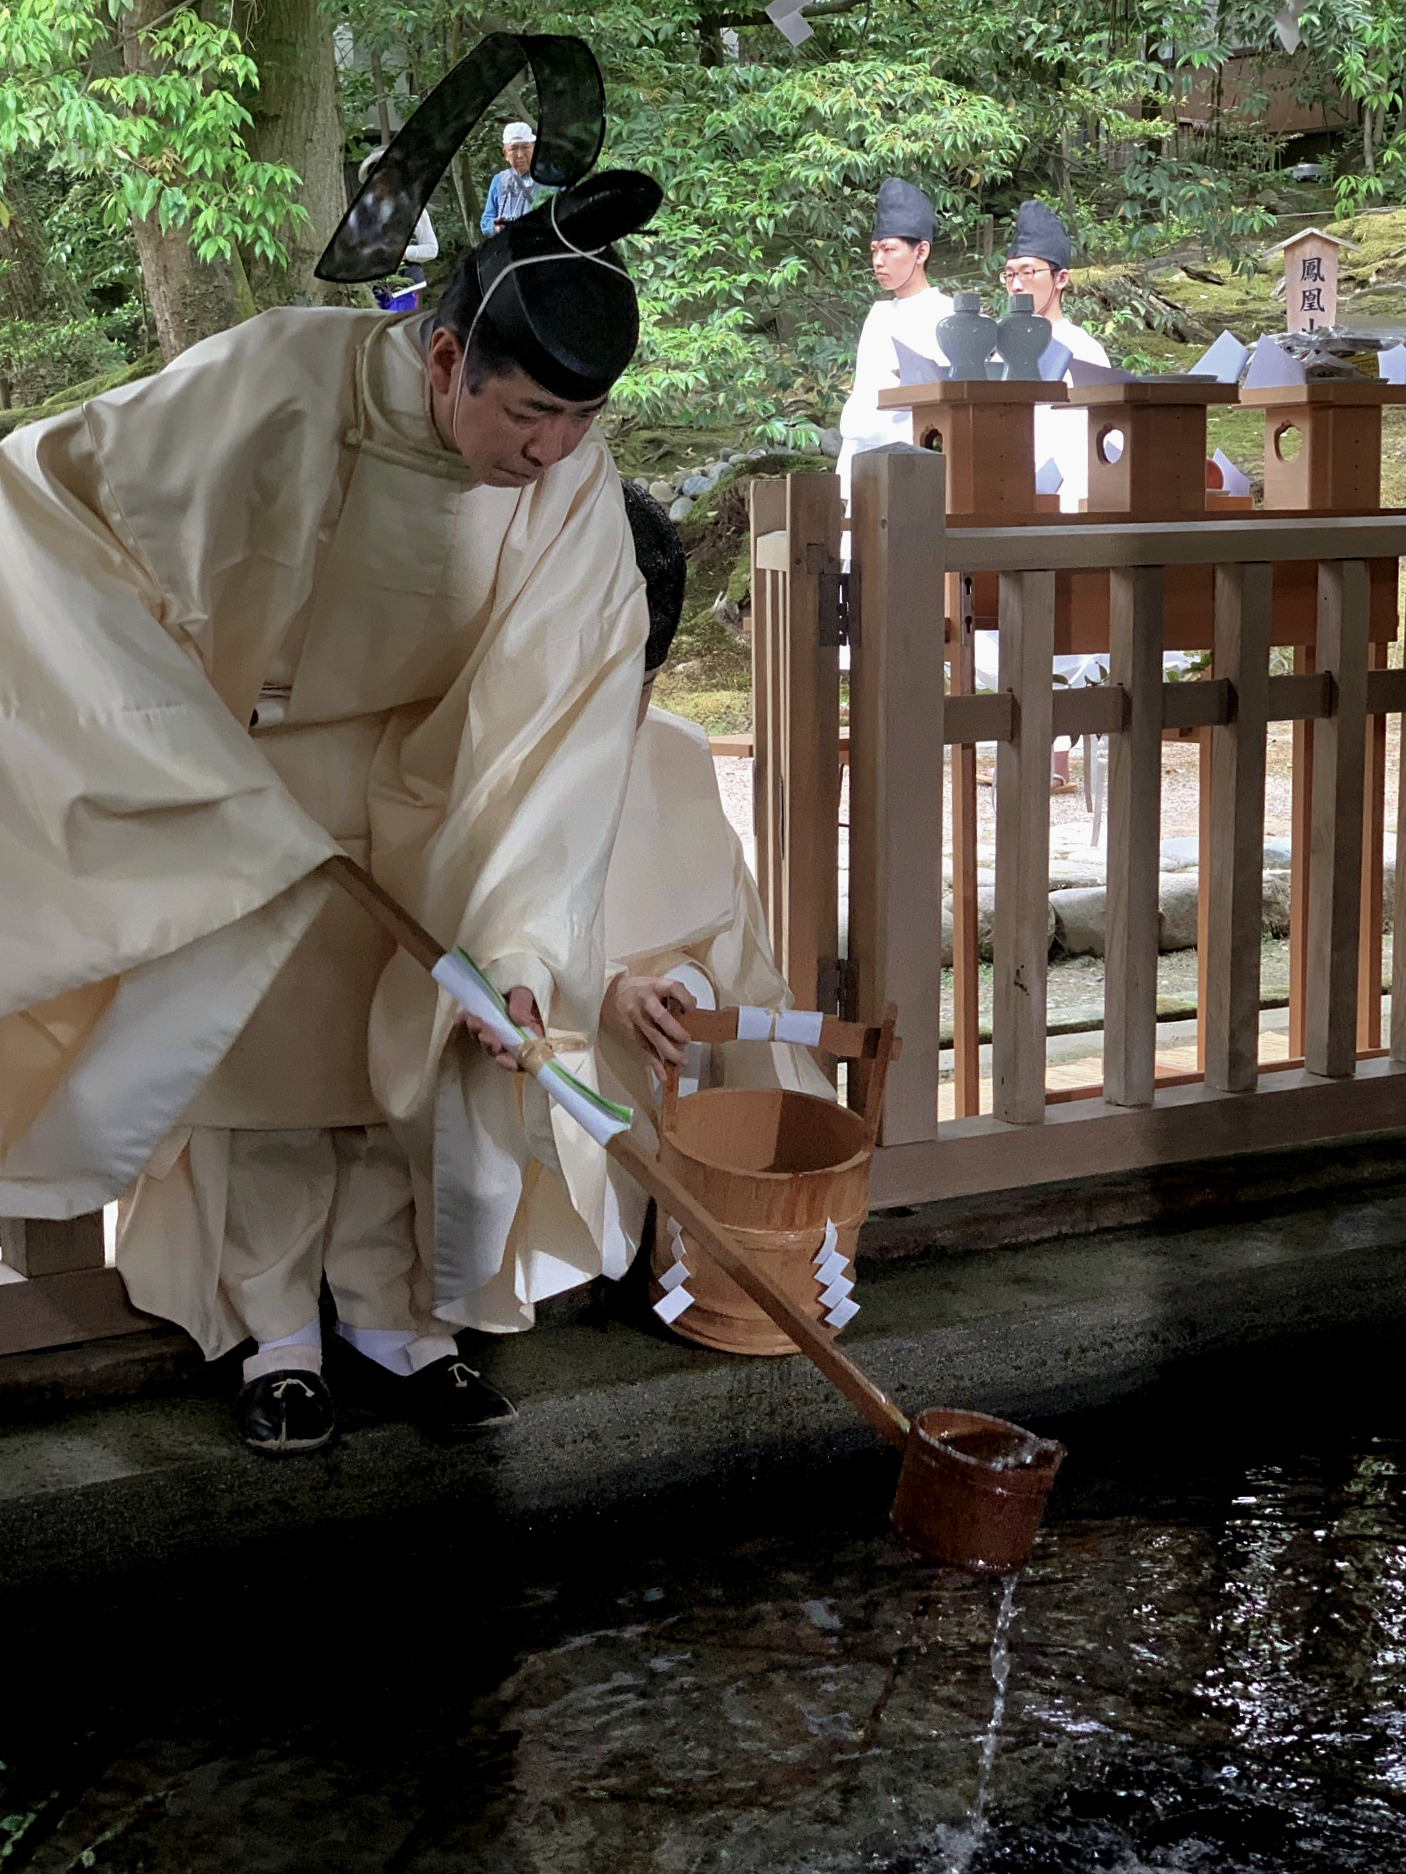 At the start of the Hyakumangoku Festival, water is drawn from the sacred well at Kanazawa Shrine